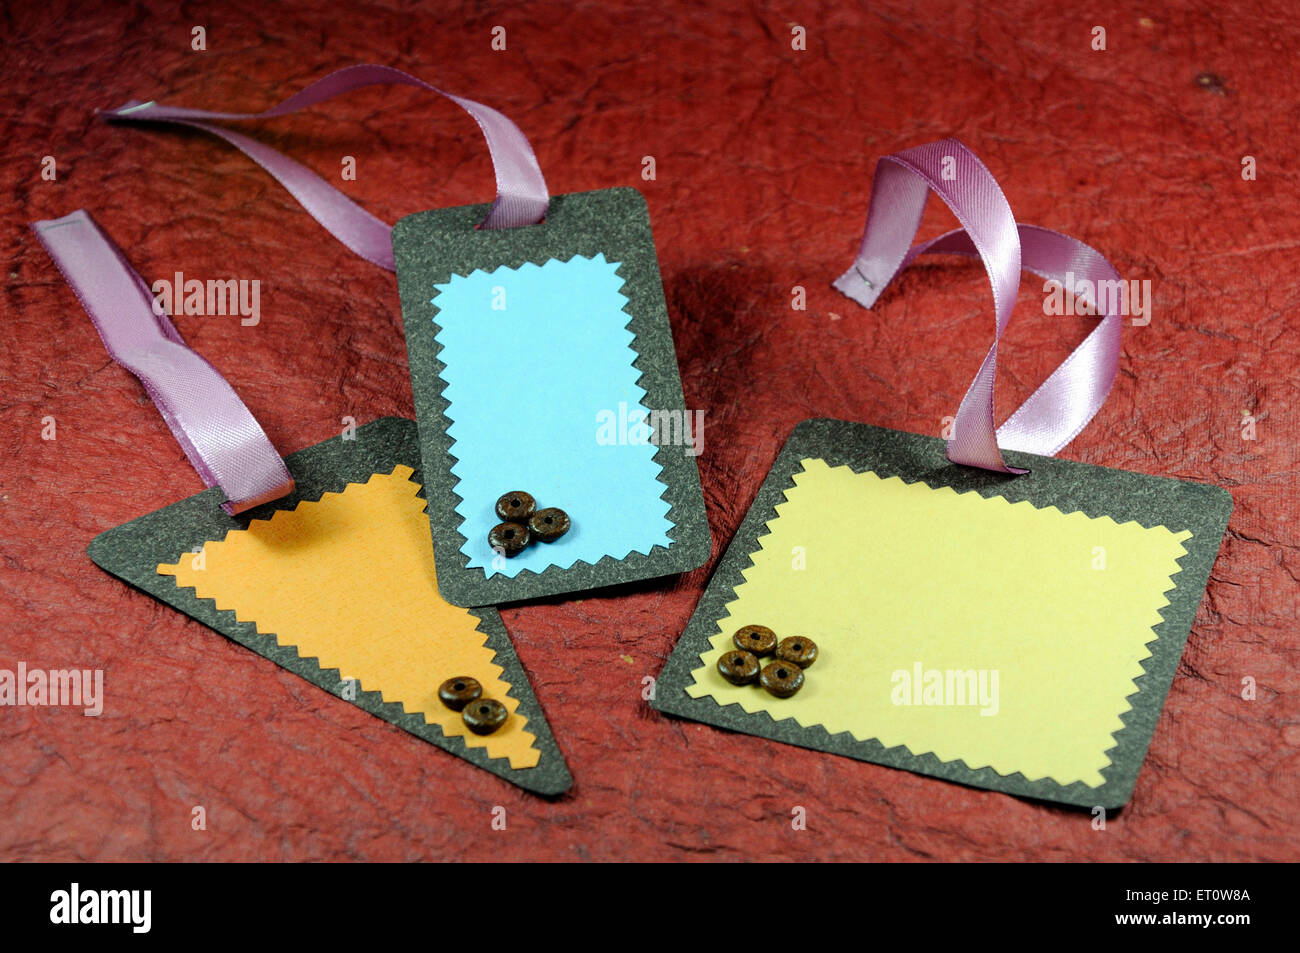 Different shapes of labels on maroon background India Asia - Stock Image